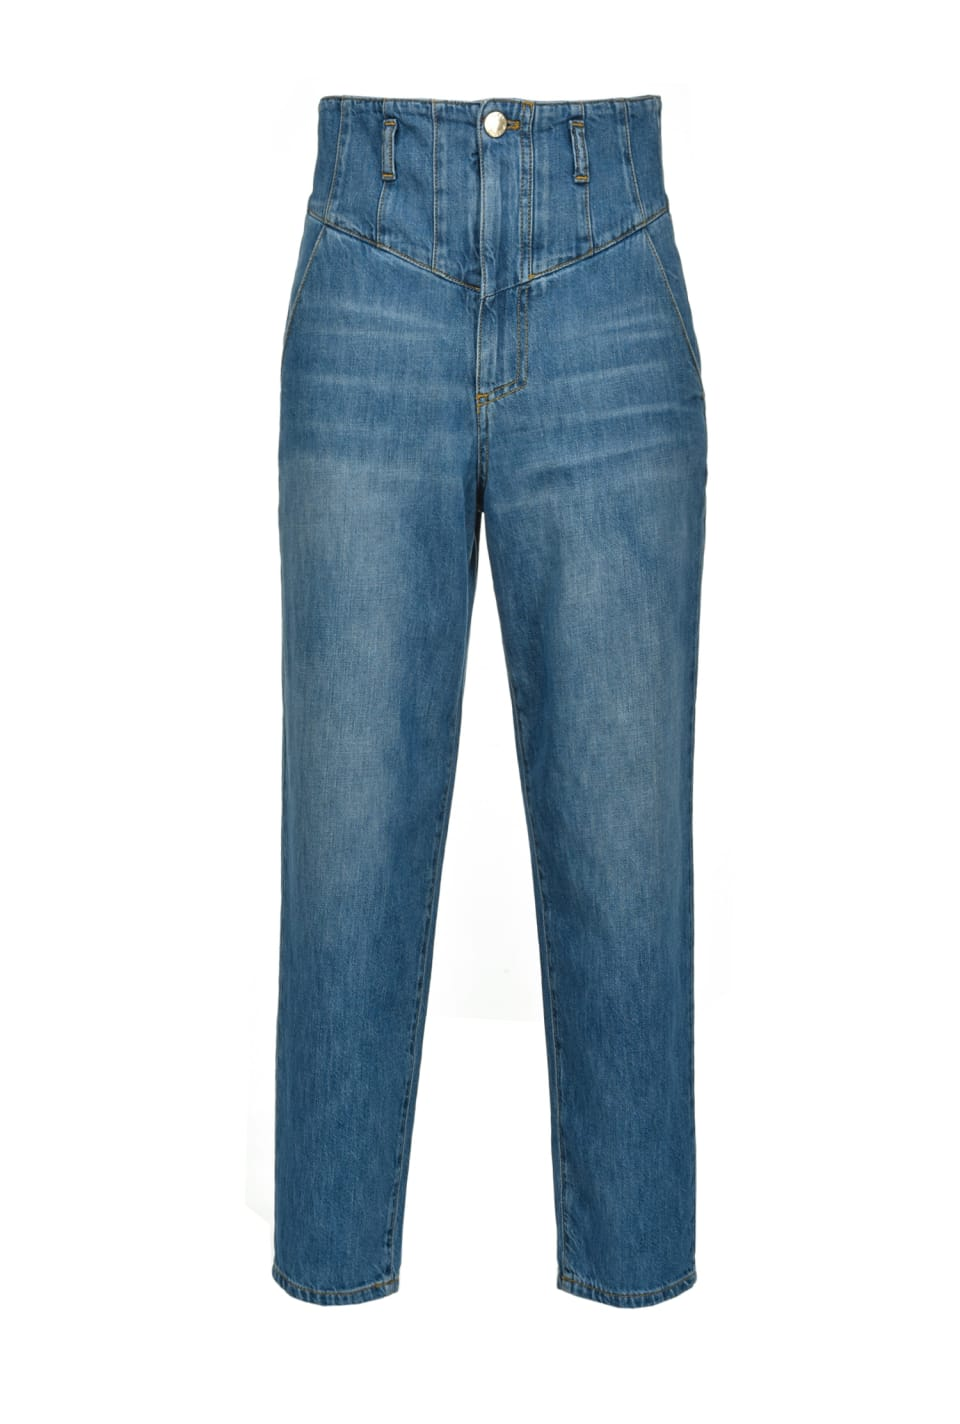 High-rise carrot-fit jeans